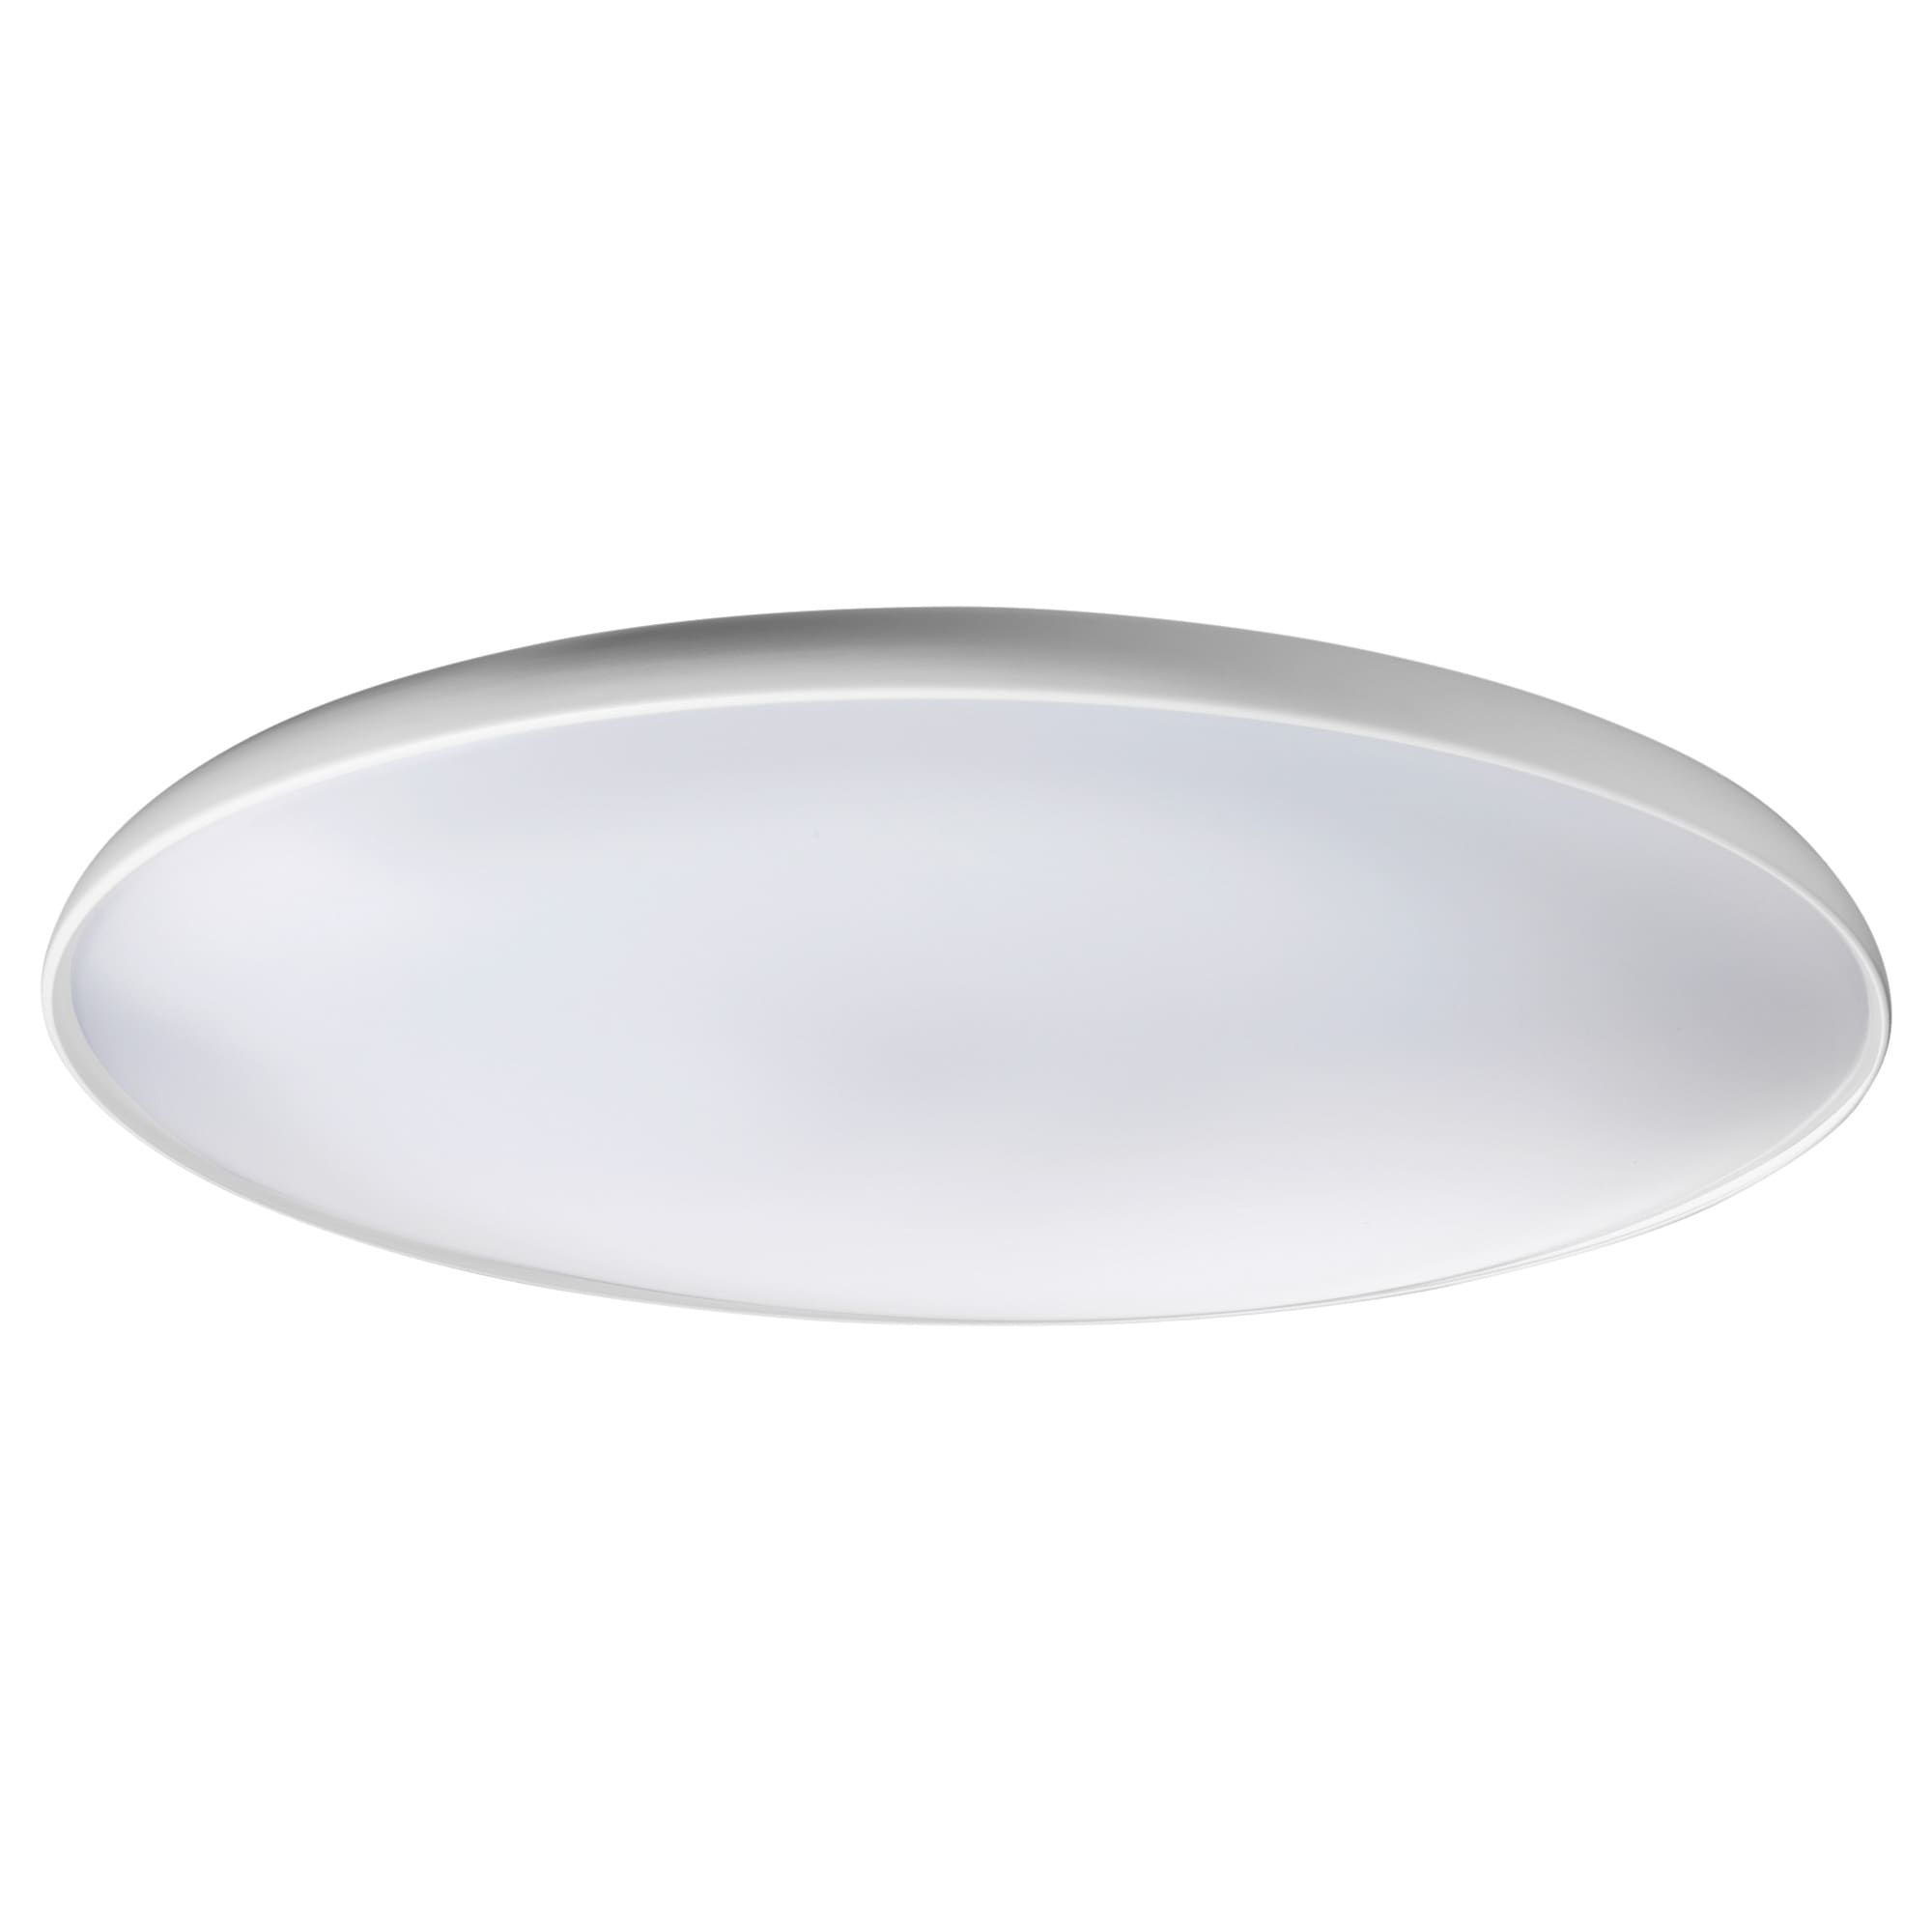 Nymne led ceiling lamp ikea inter ikea systems bv 1999 2017 privacy policy arubaitofo Image collections